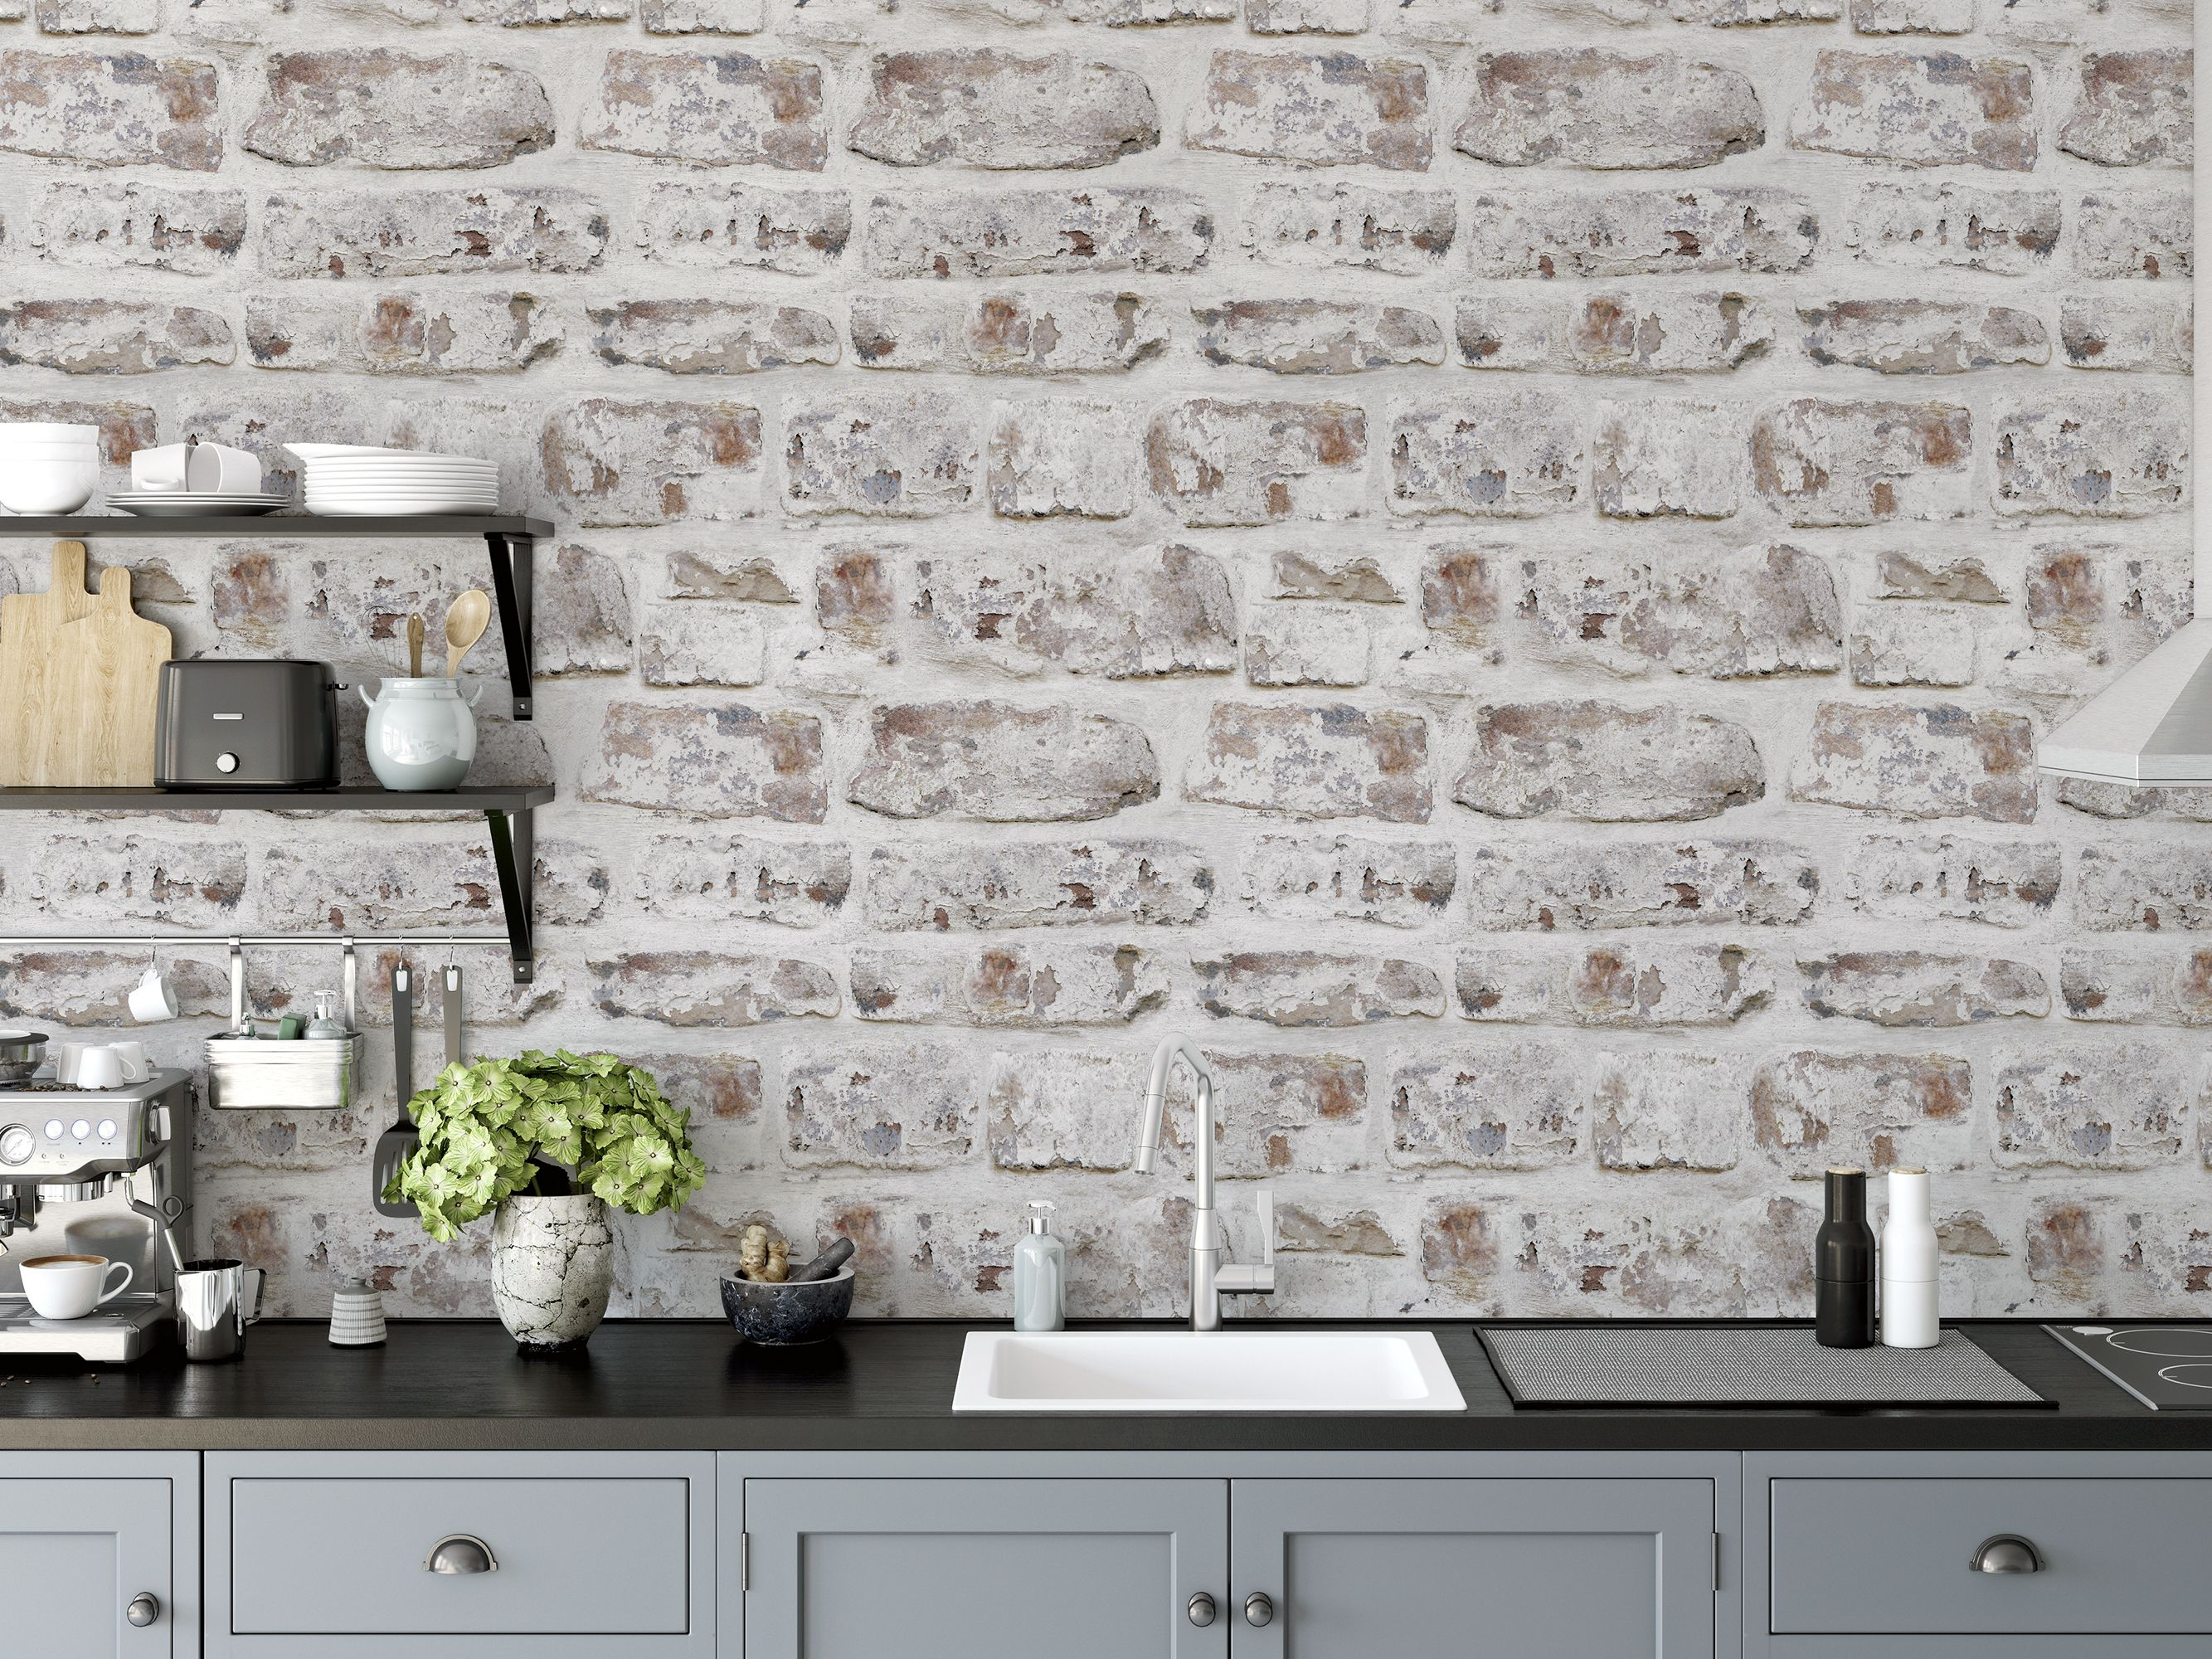 Artistick White Washed Wall Peel And Stick Non Woven Wallpaper 300204 The Home Depot White Wash Walls Washing Walls Brick Wallpaper Roll